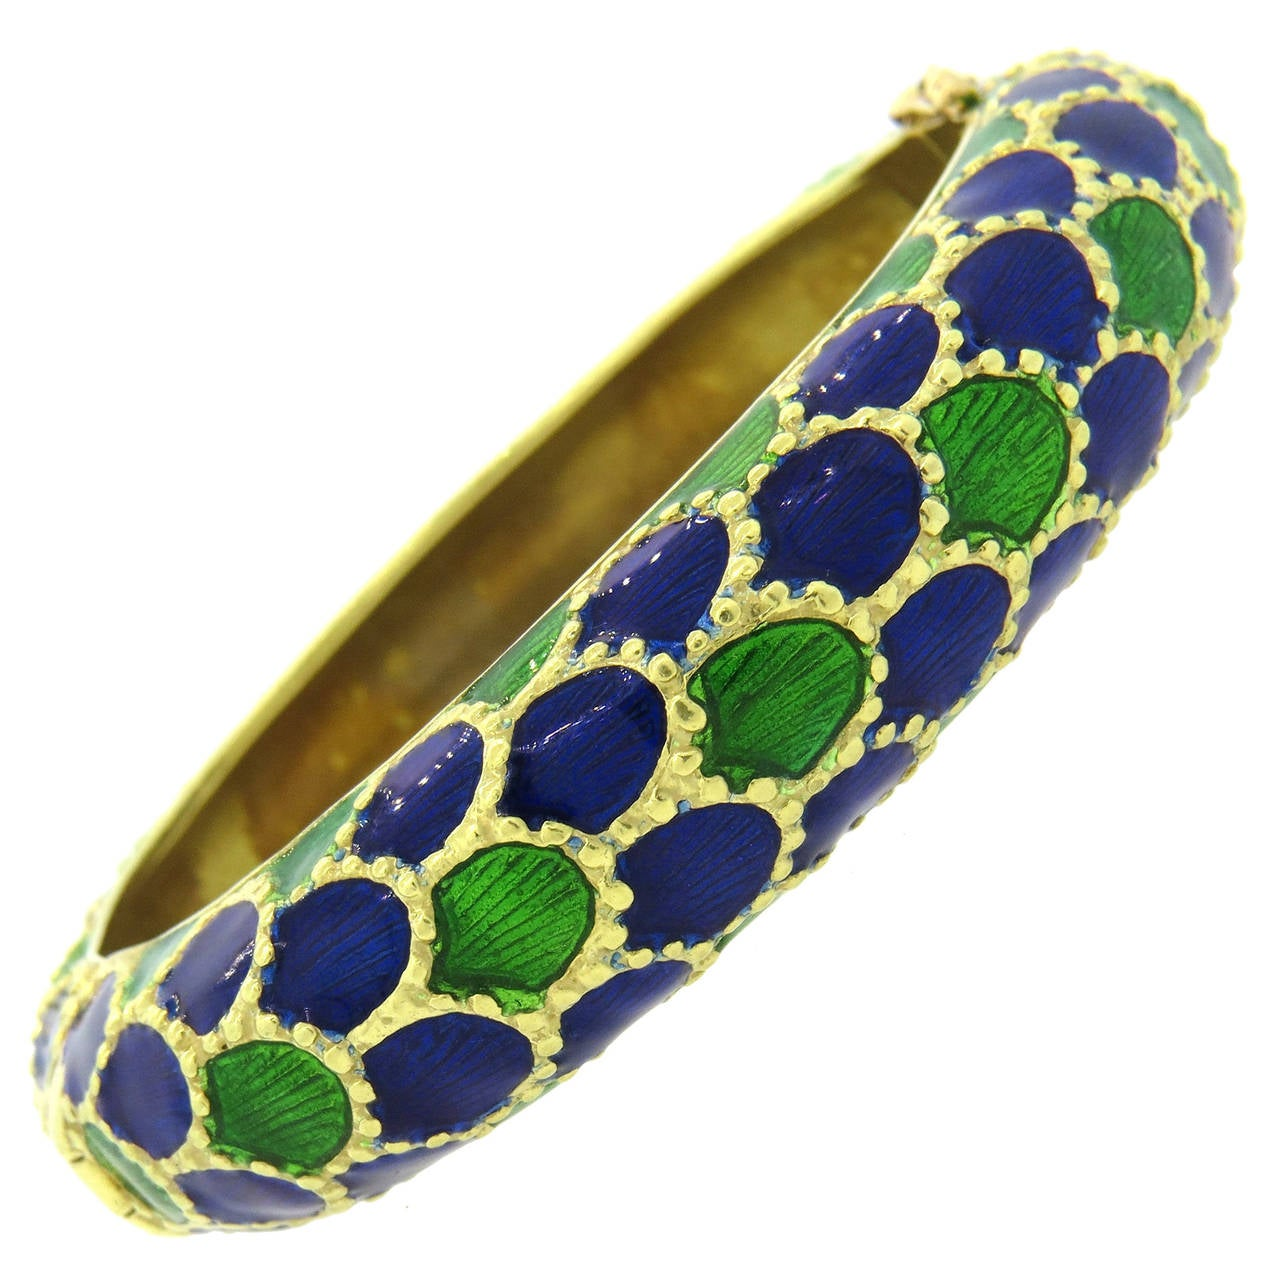 1960s Tiffany & Co Gold Blue Green Enamel Bangle Bracelet For Sale